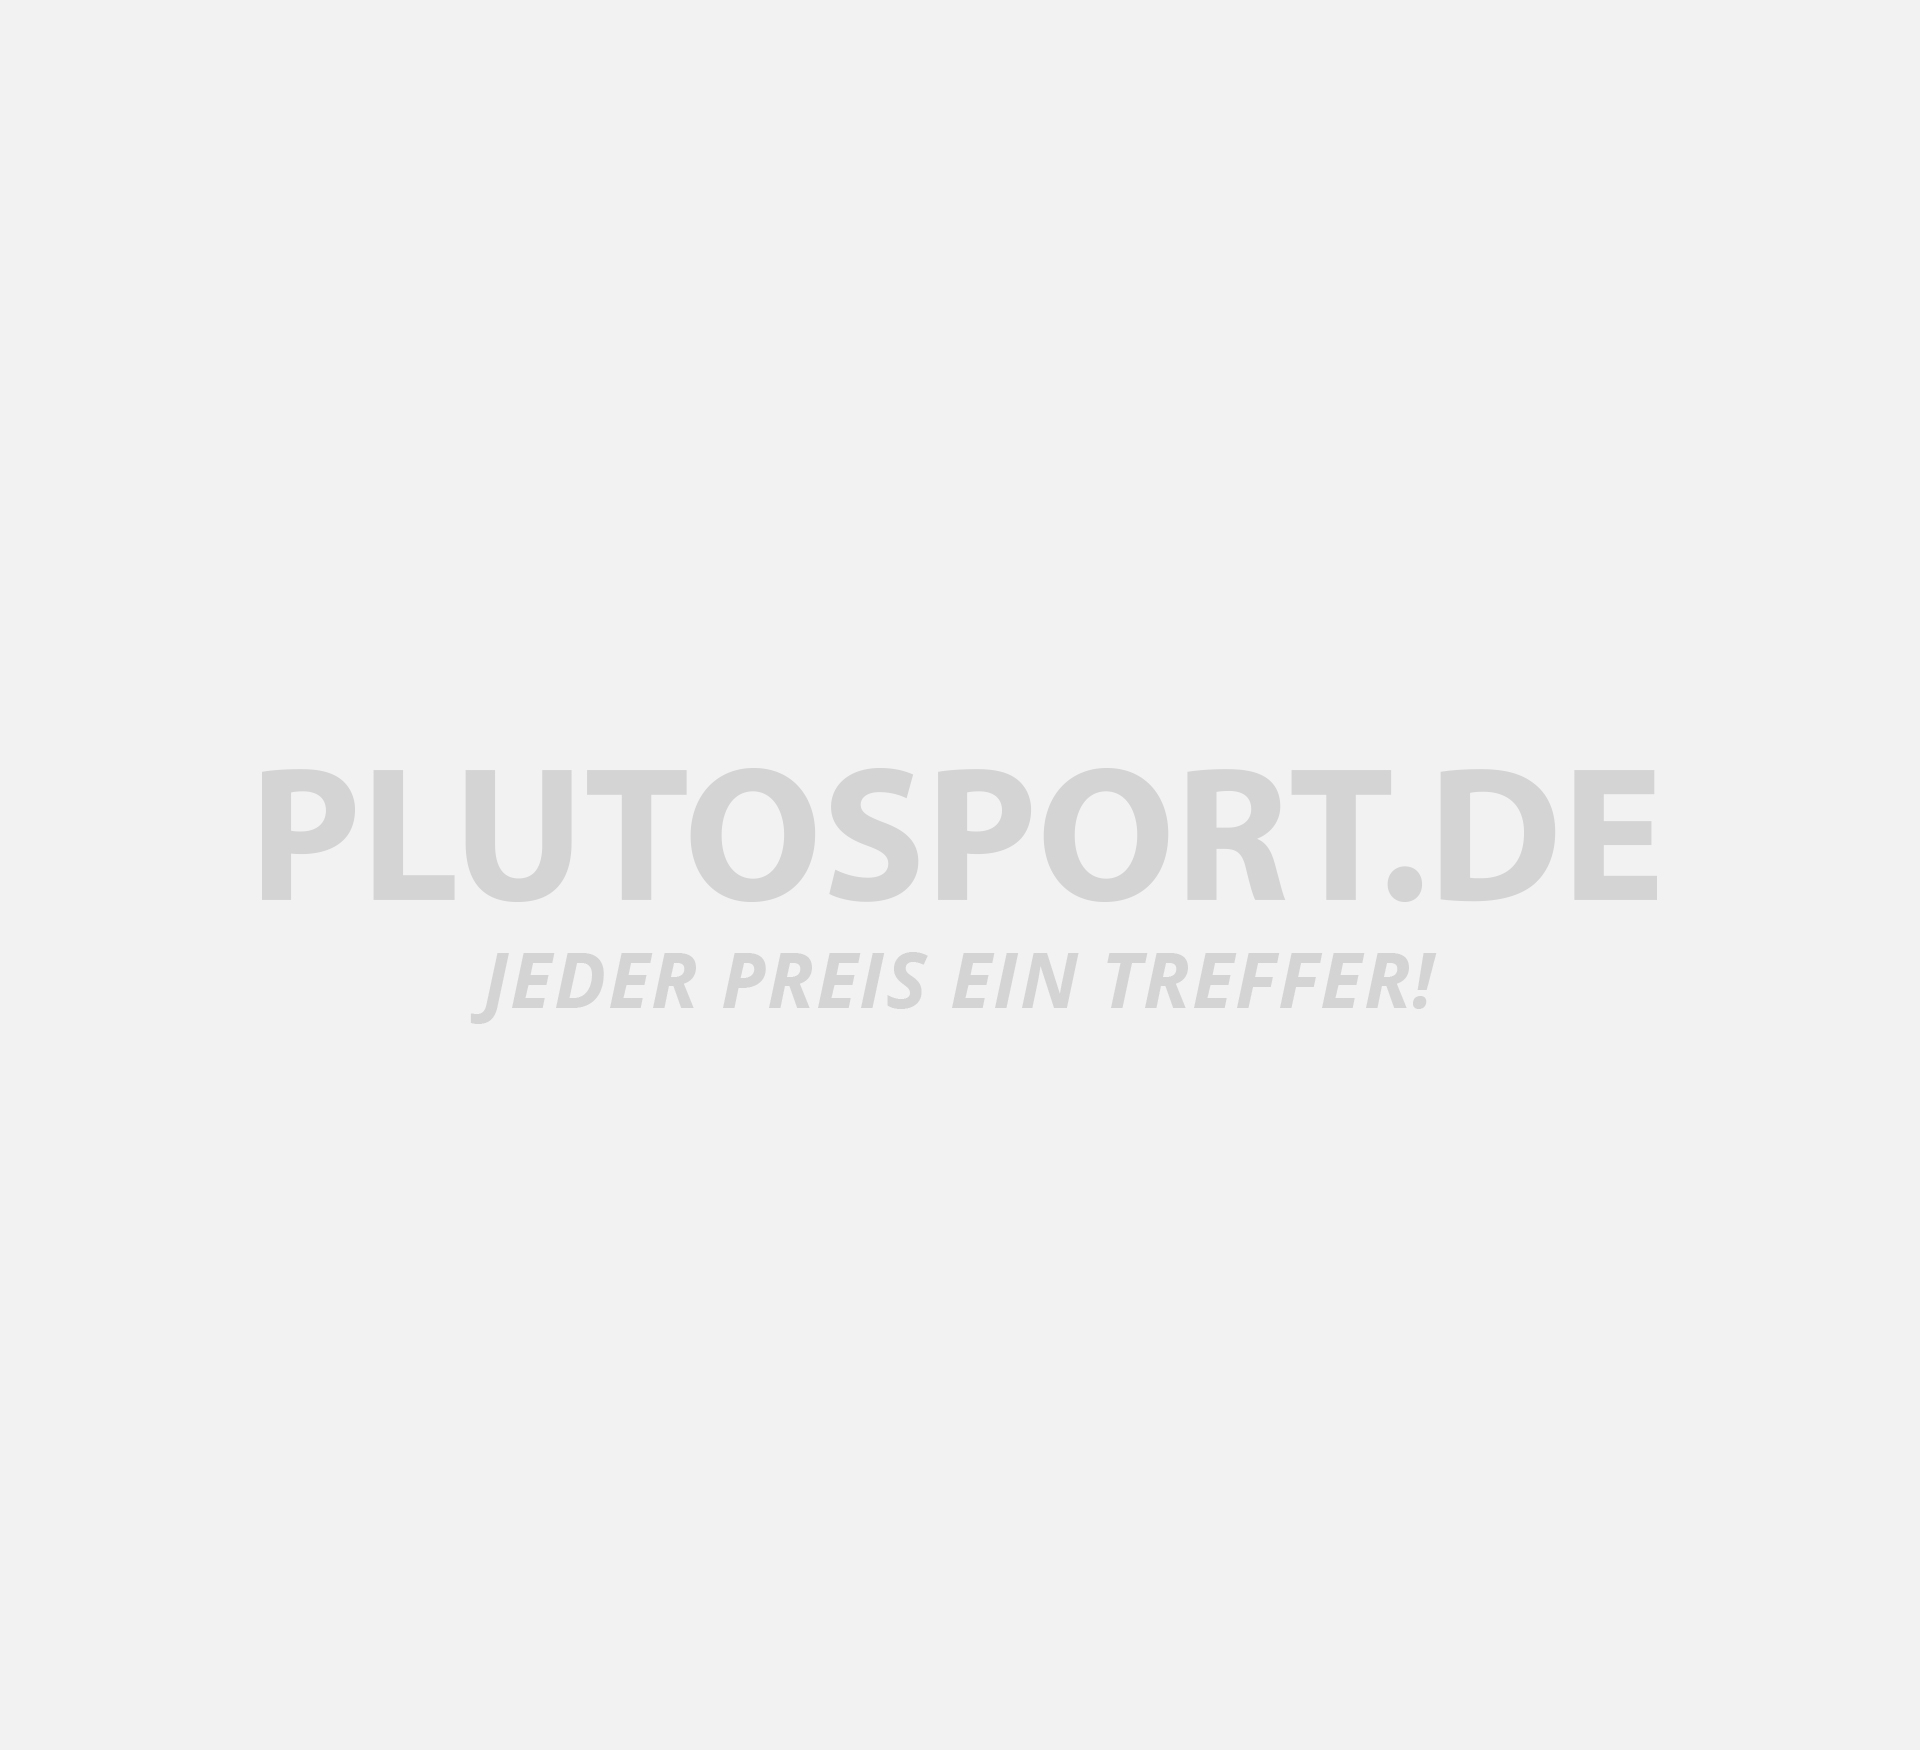 Highlander Hiker Backpack (30L)